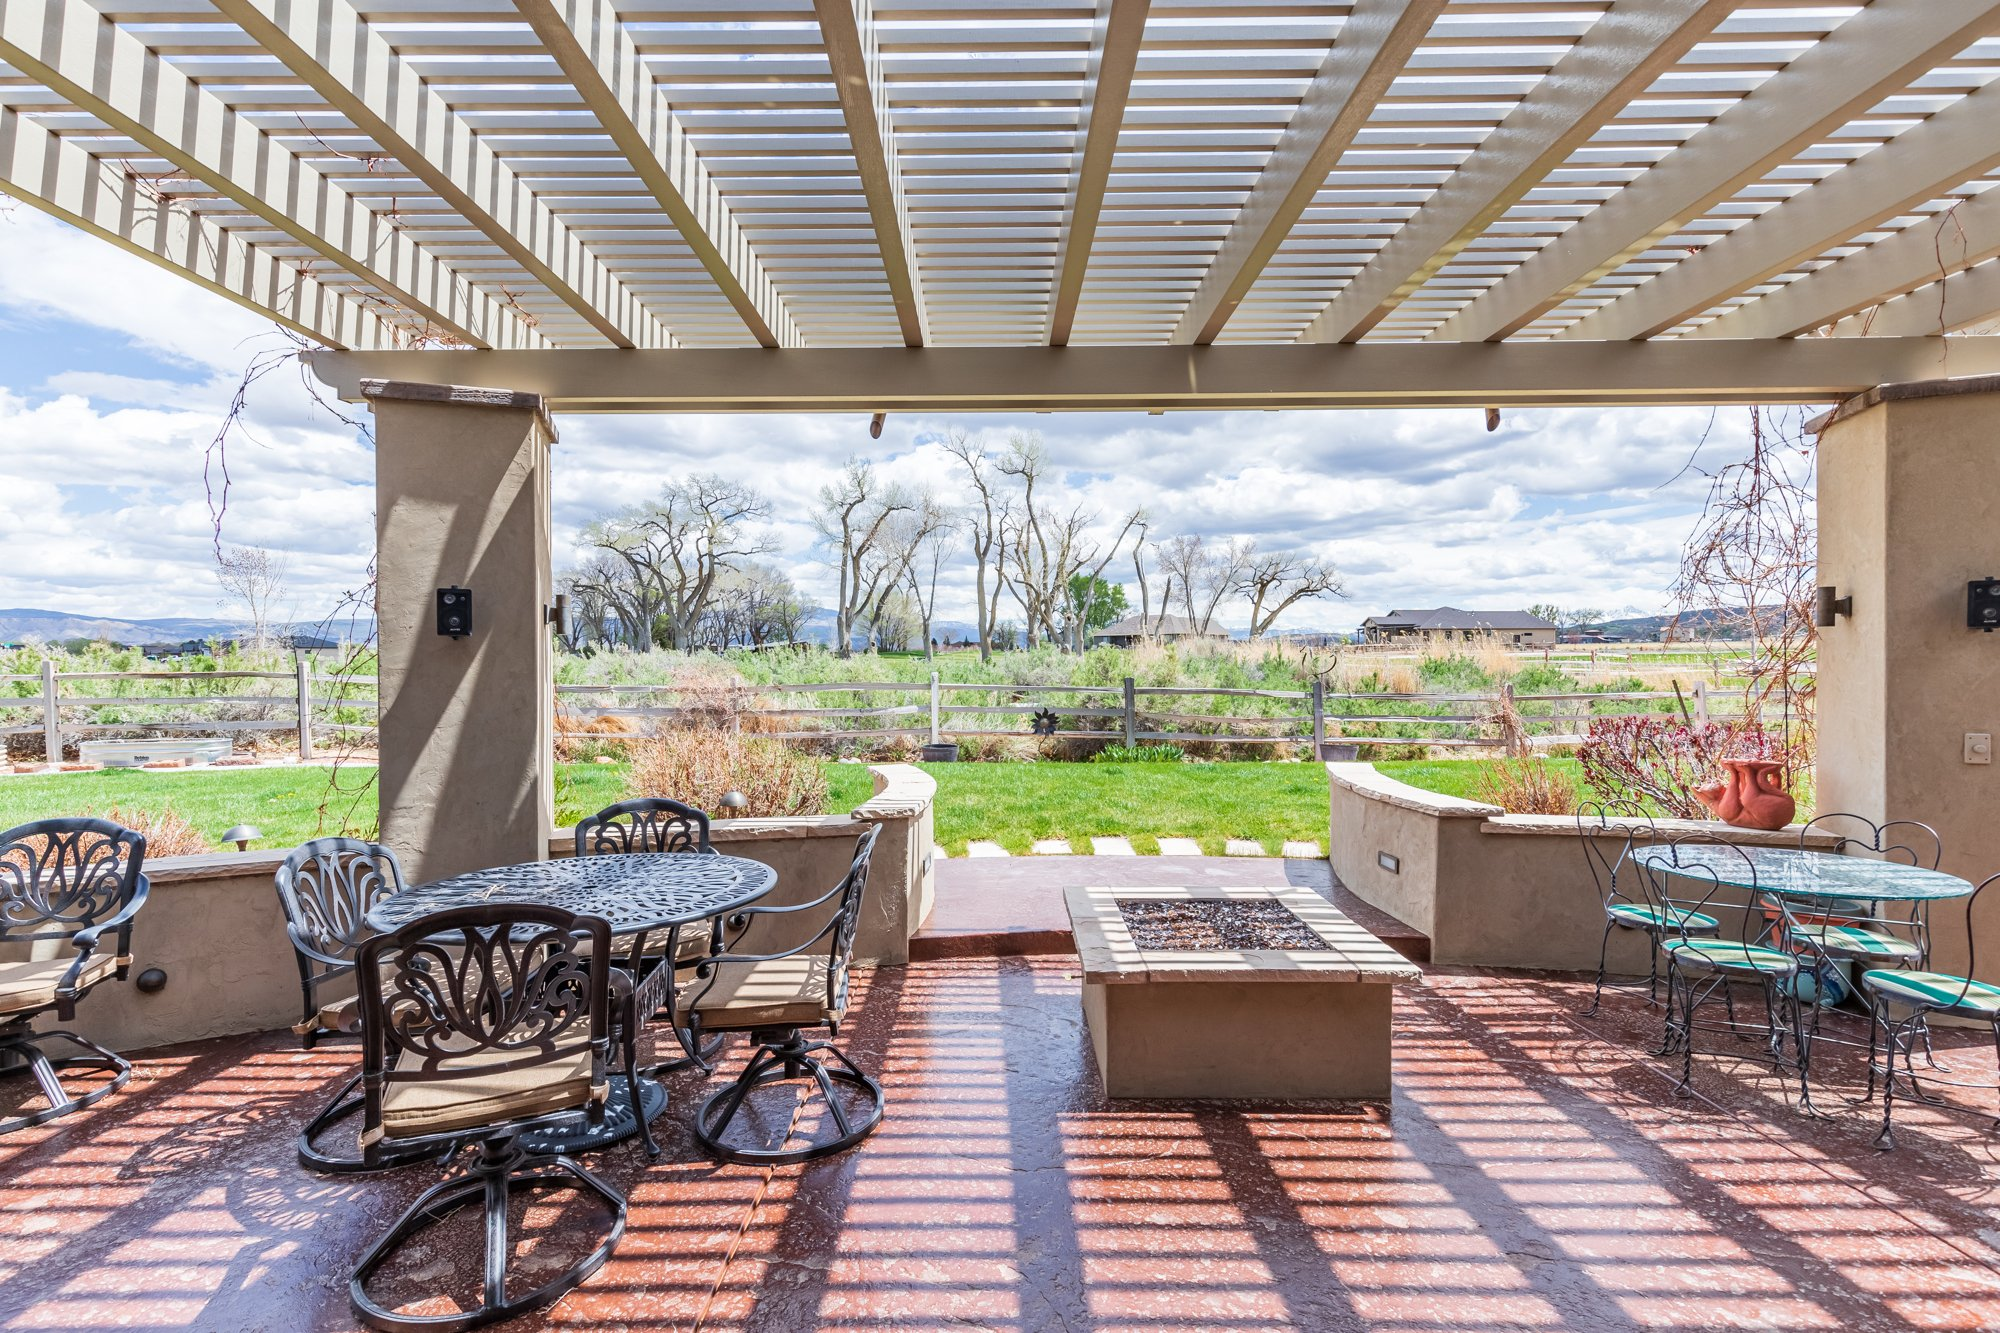 Pergola Covered Back Patio - 640 Badger Court Montrose, CO 81403 - Atha Team Real Estate Agents